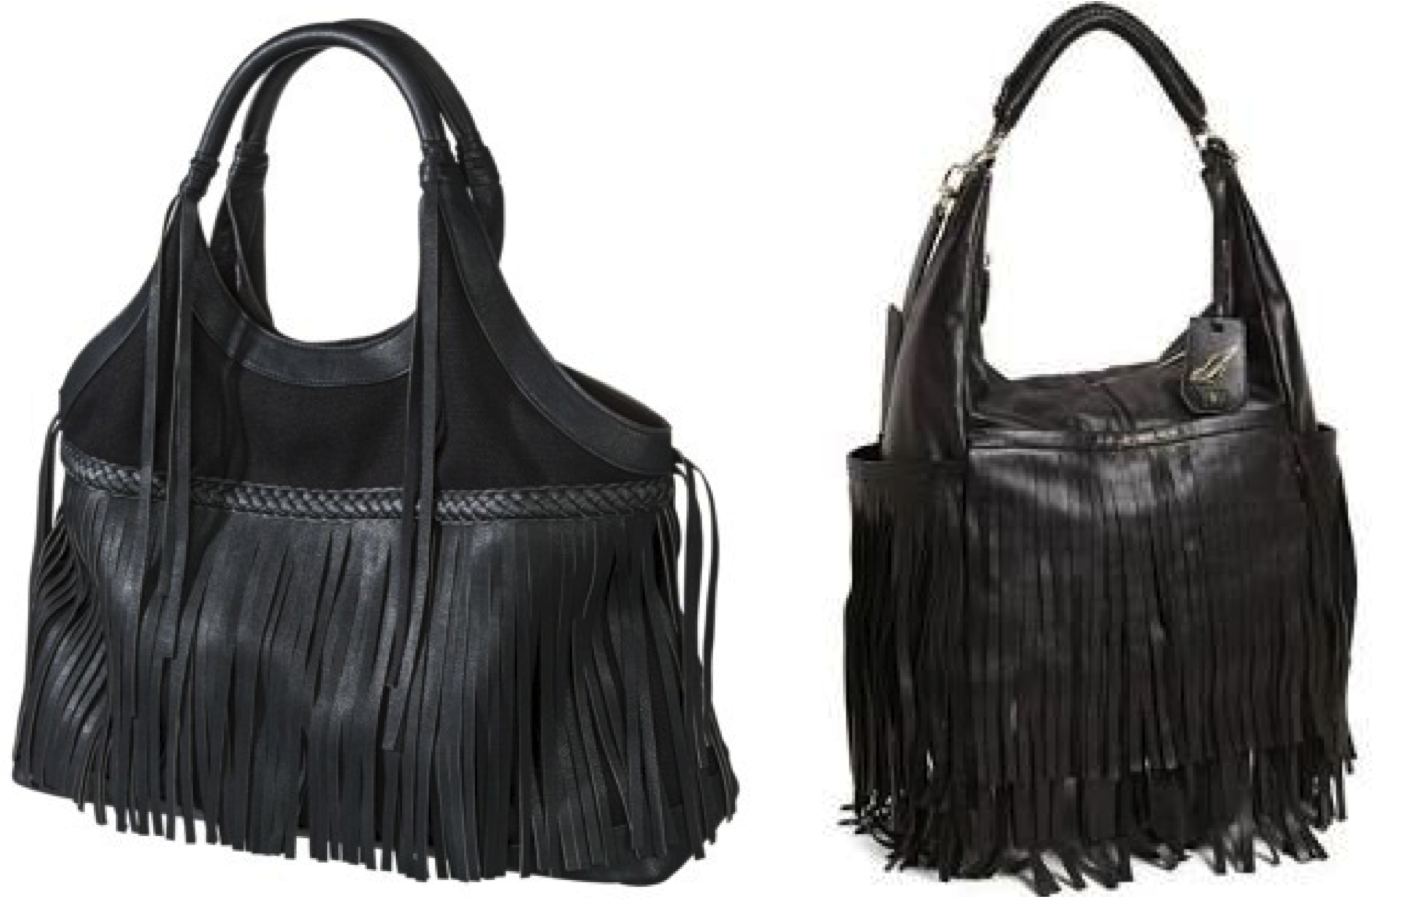 Steal Splurge - Black Fringe Bag